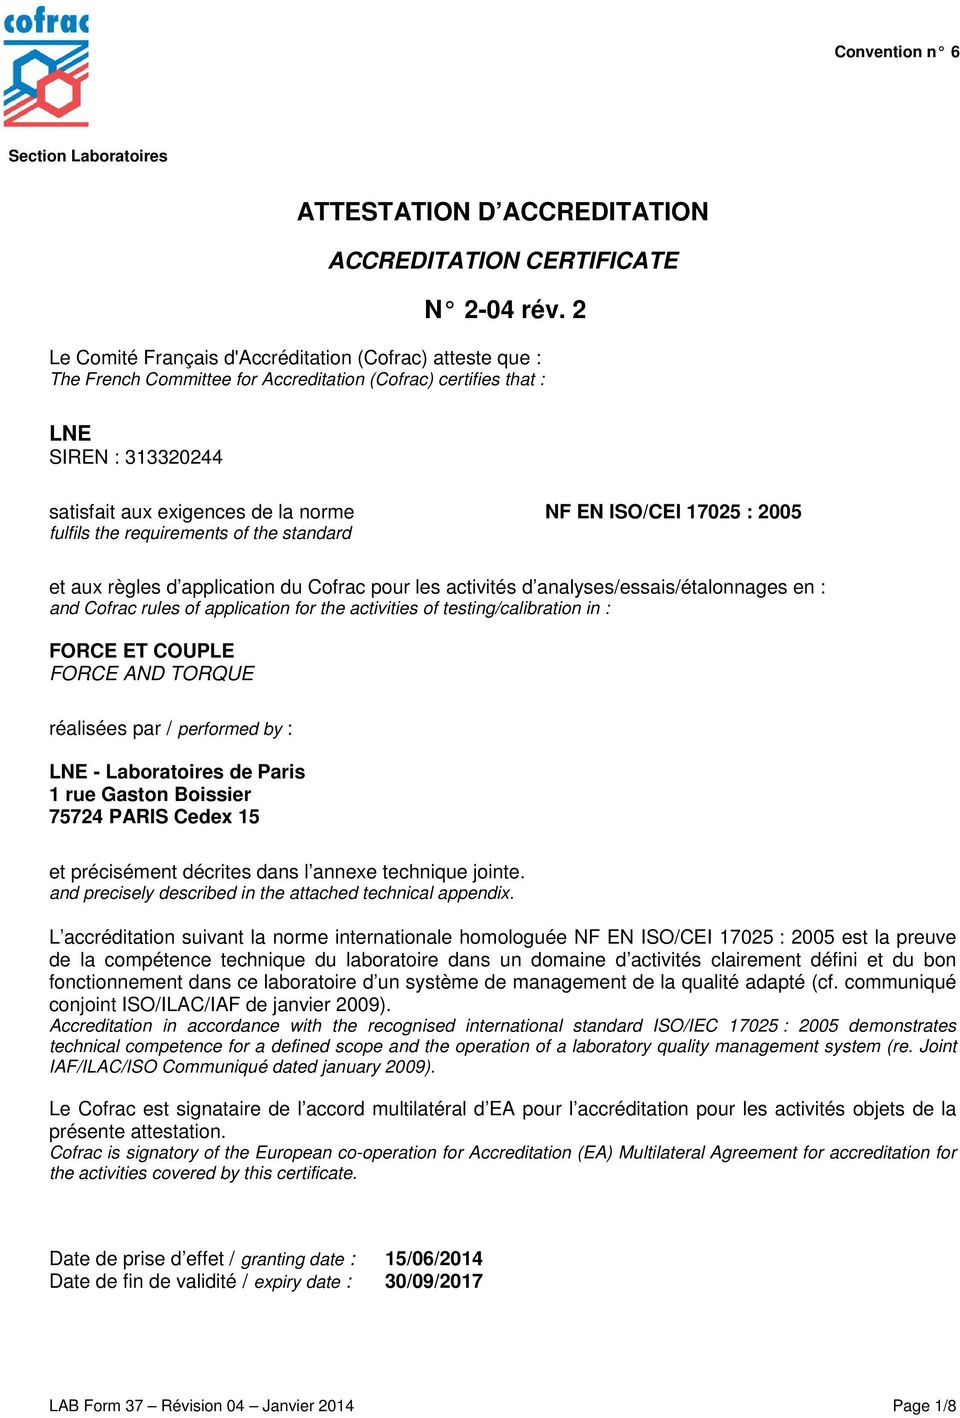 17025 : 2005 fulfils the requirements of the standard et aux règles d application du Cofrac pour les activités d analyses/essais/étalonnages en : and Cofrac rules of application for the activities of